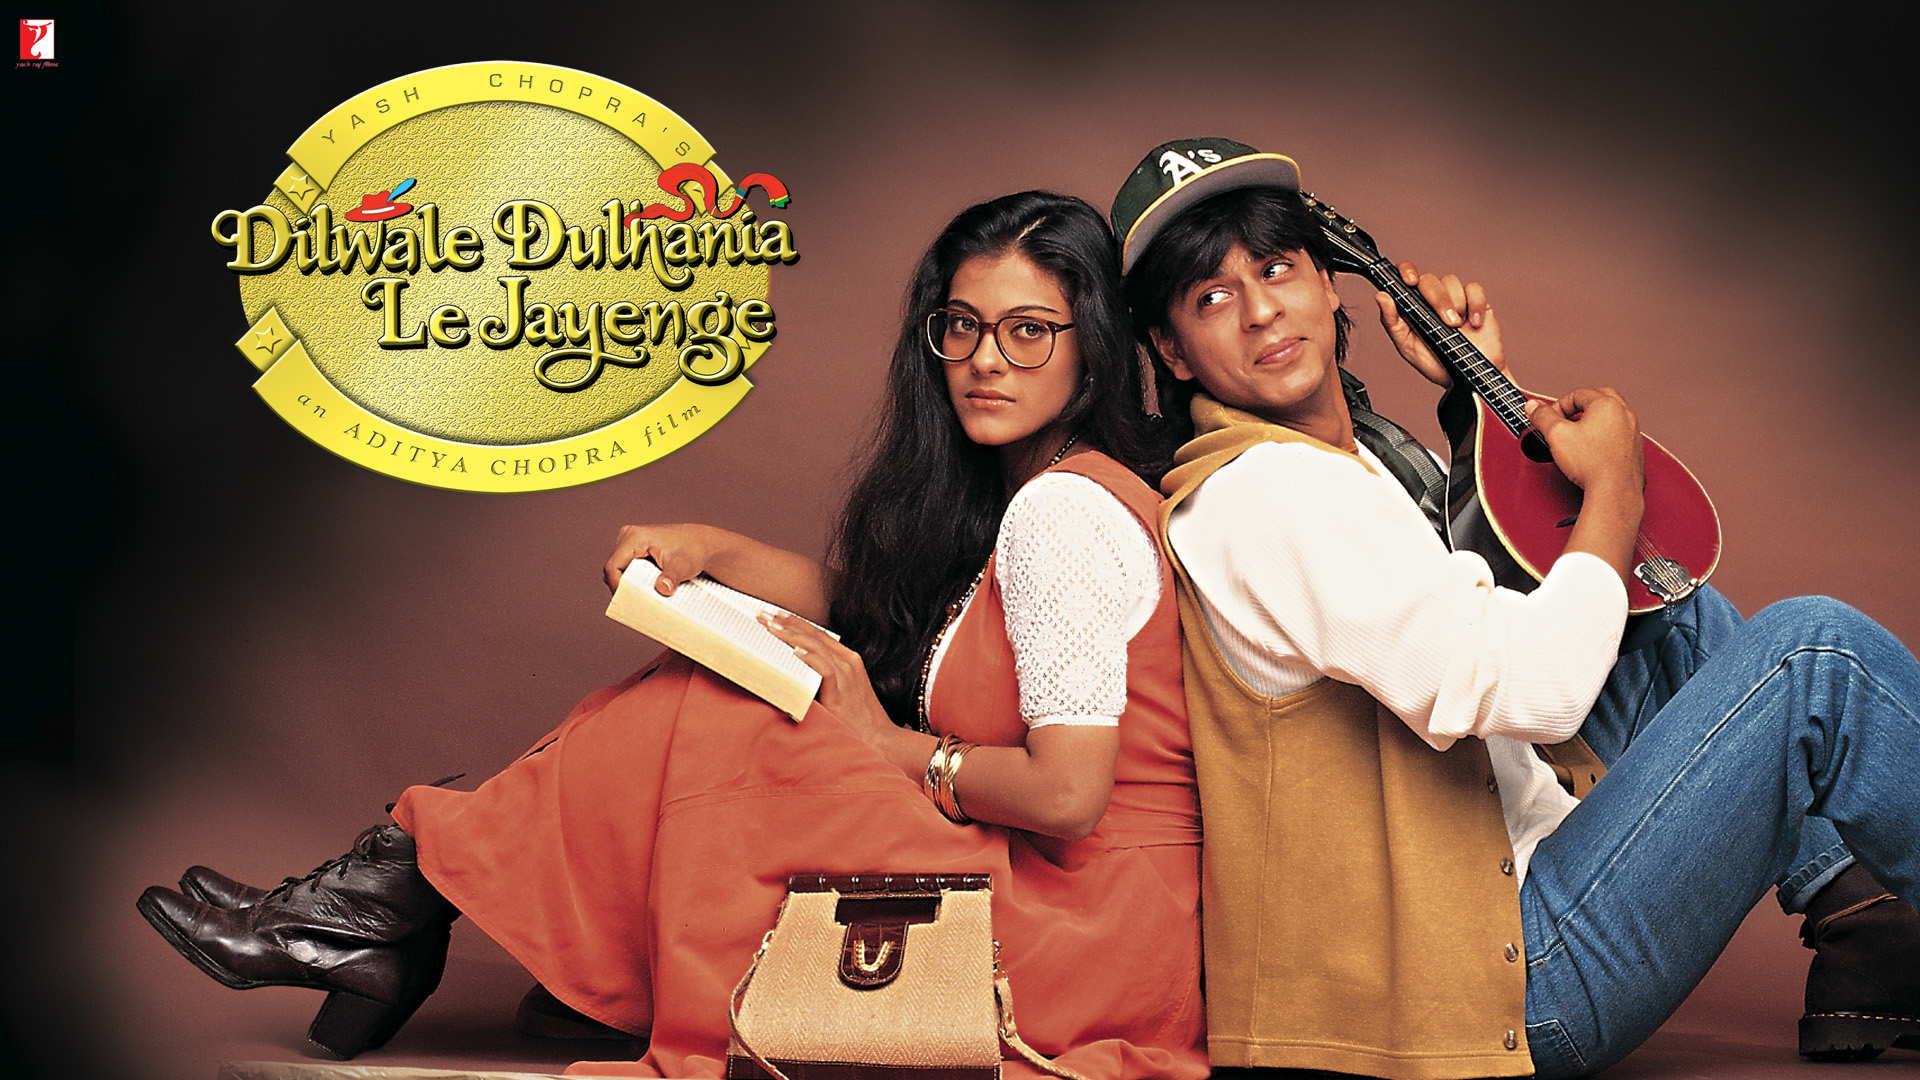 New Trailer Of Dilwale Dulhania Le Jayenge . Dilwale ...